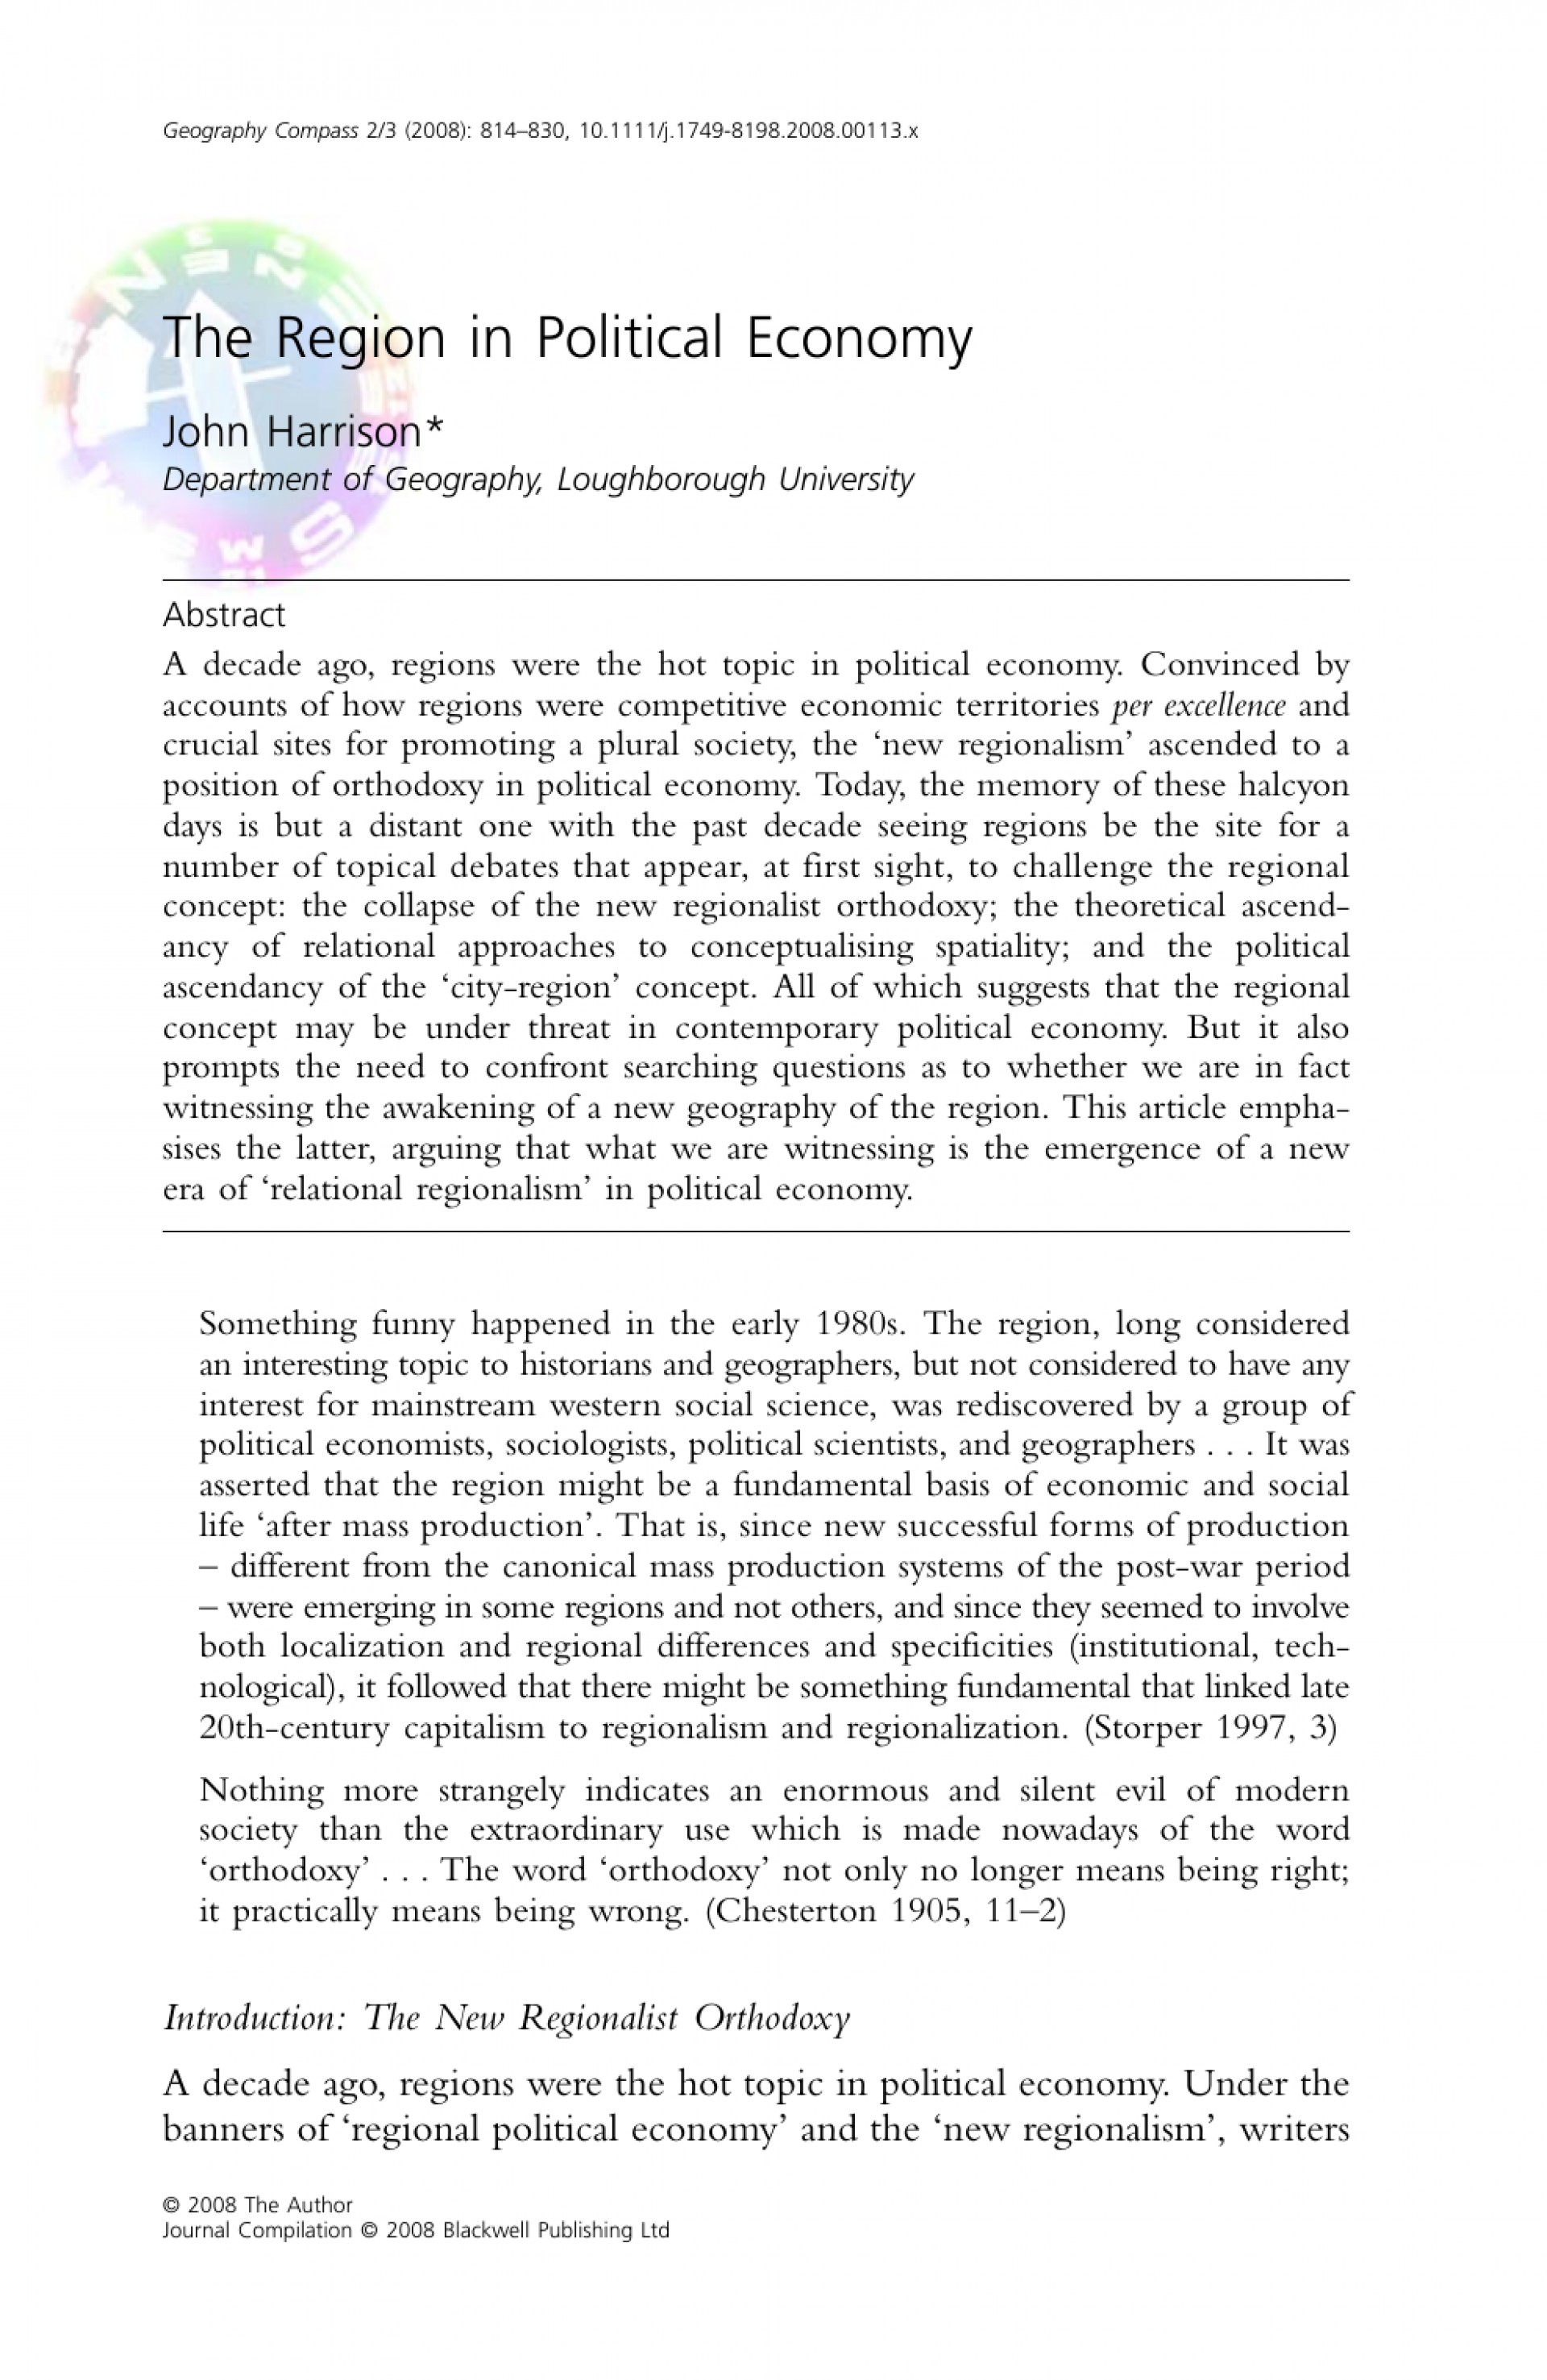 003 Research Paper Political Economy Topics Awesome International Global 1920